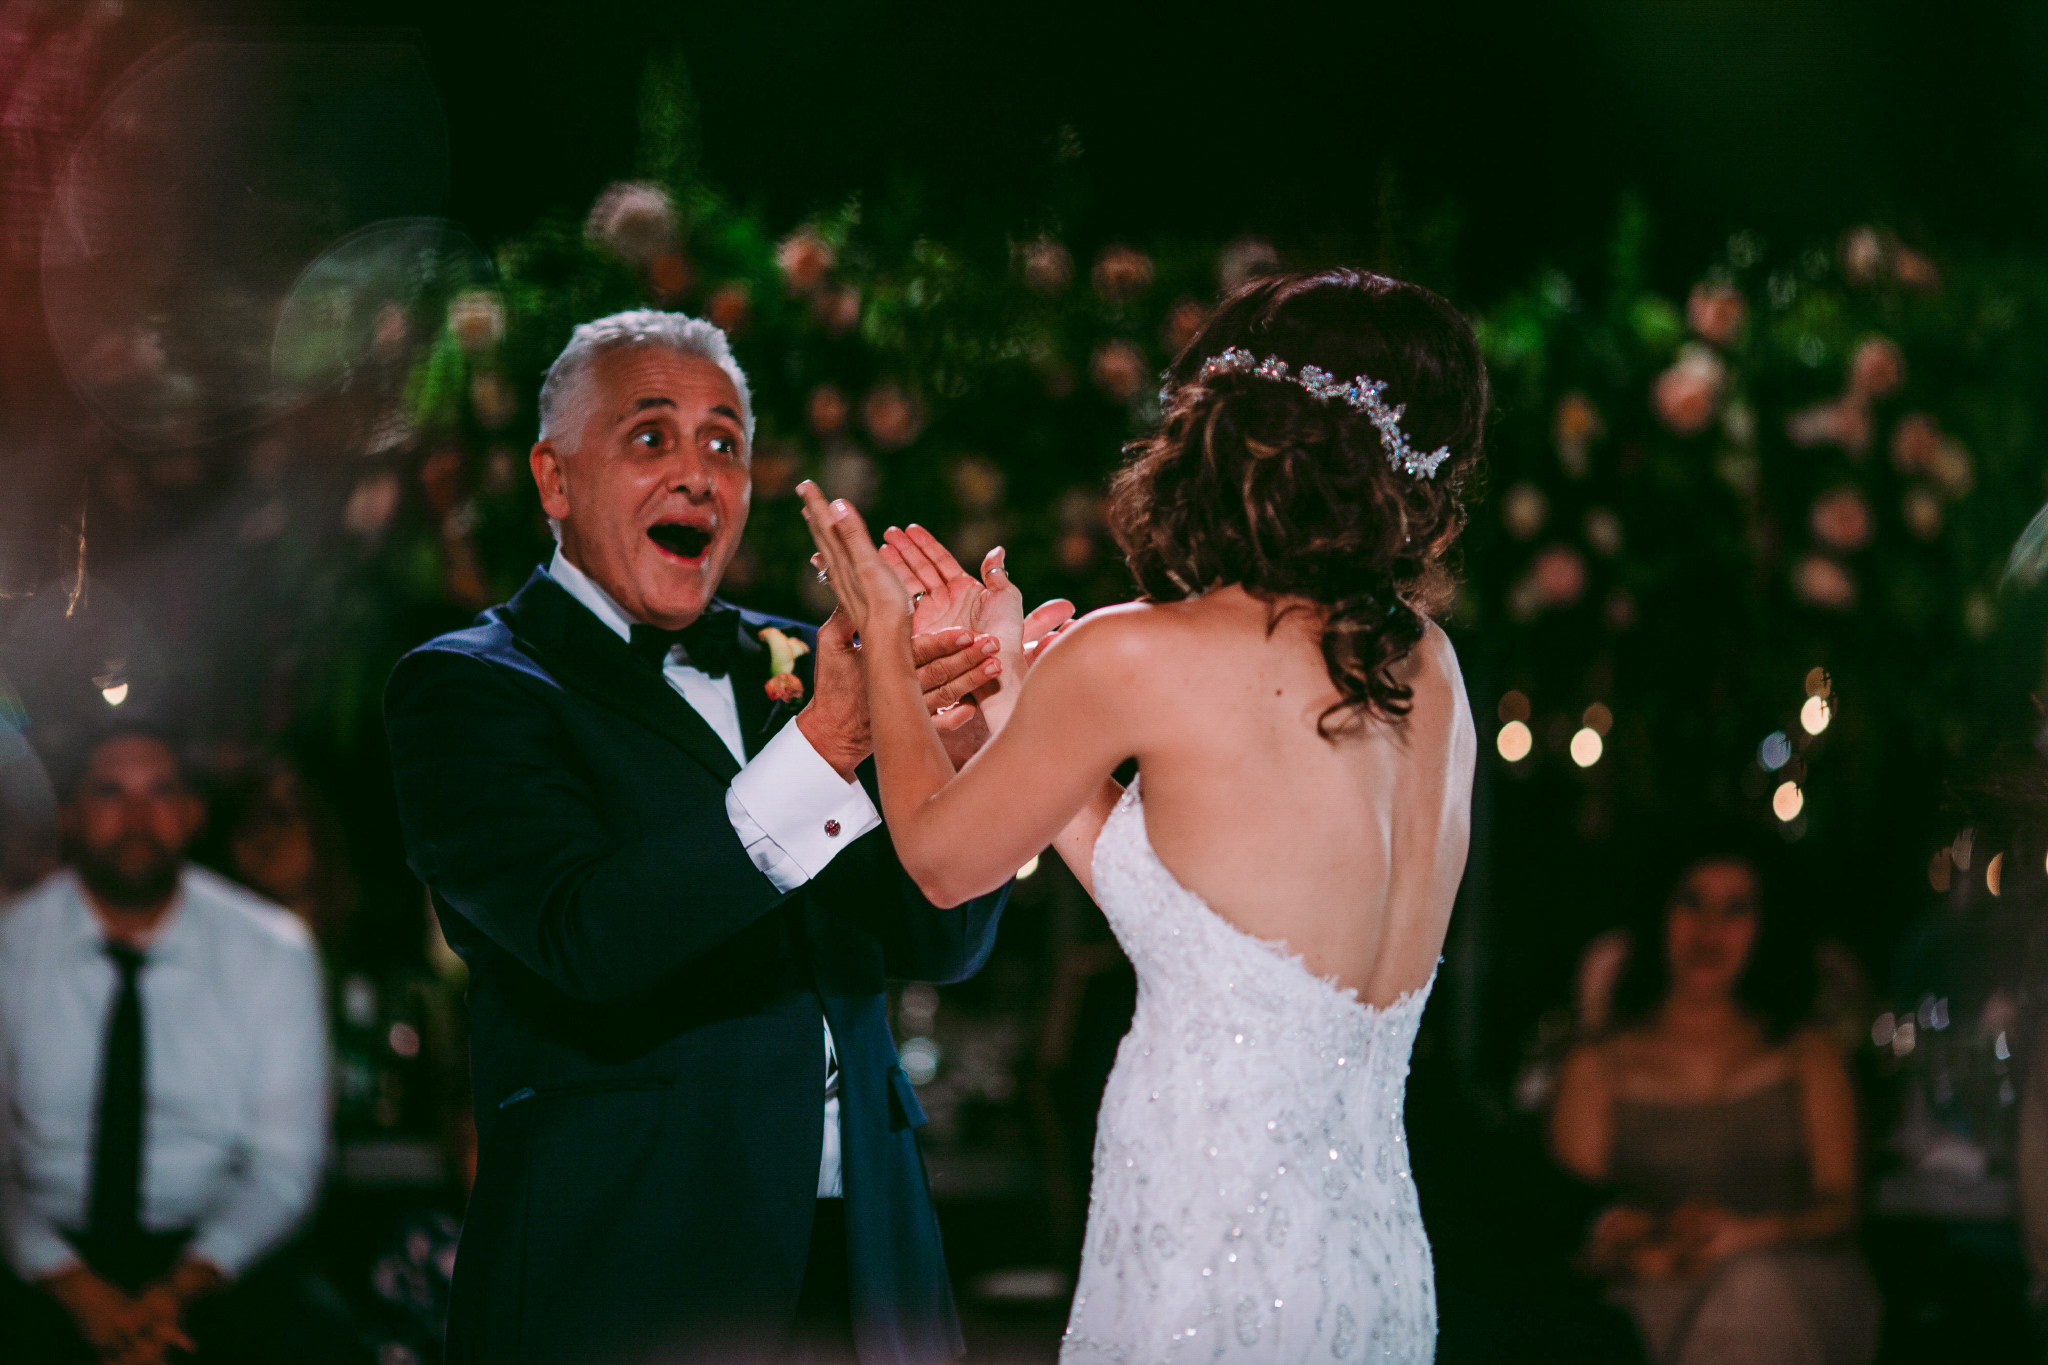 san diego wedding   photographer | bride and old man dancing while old man's mouth is open